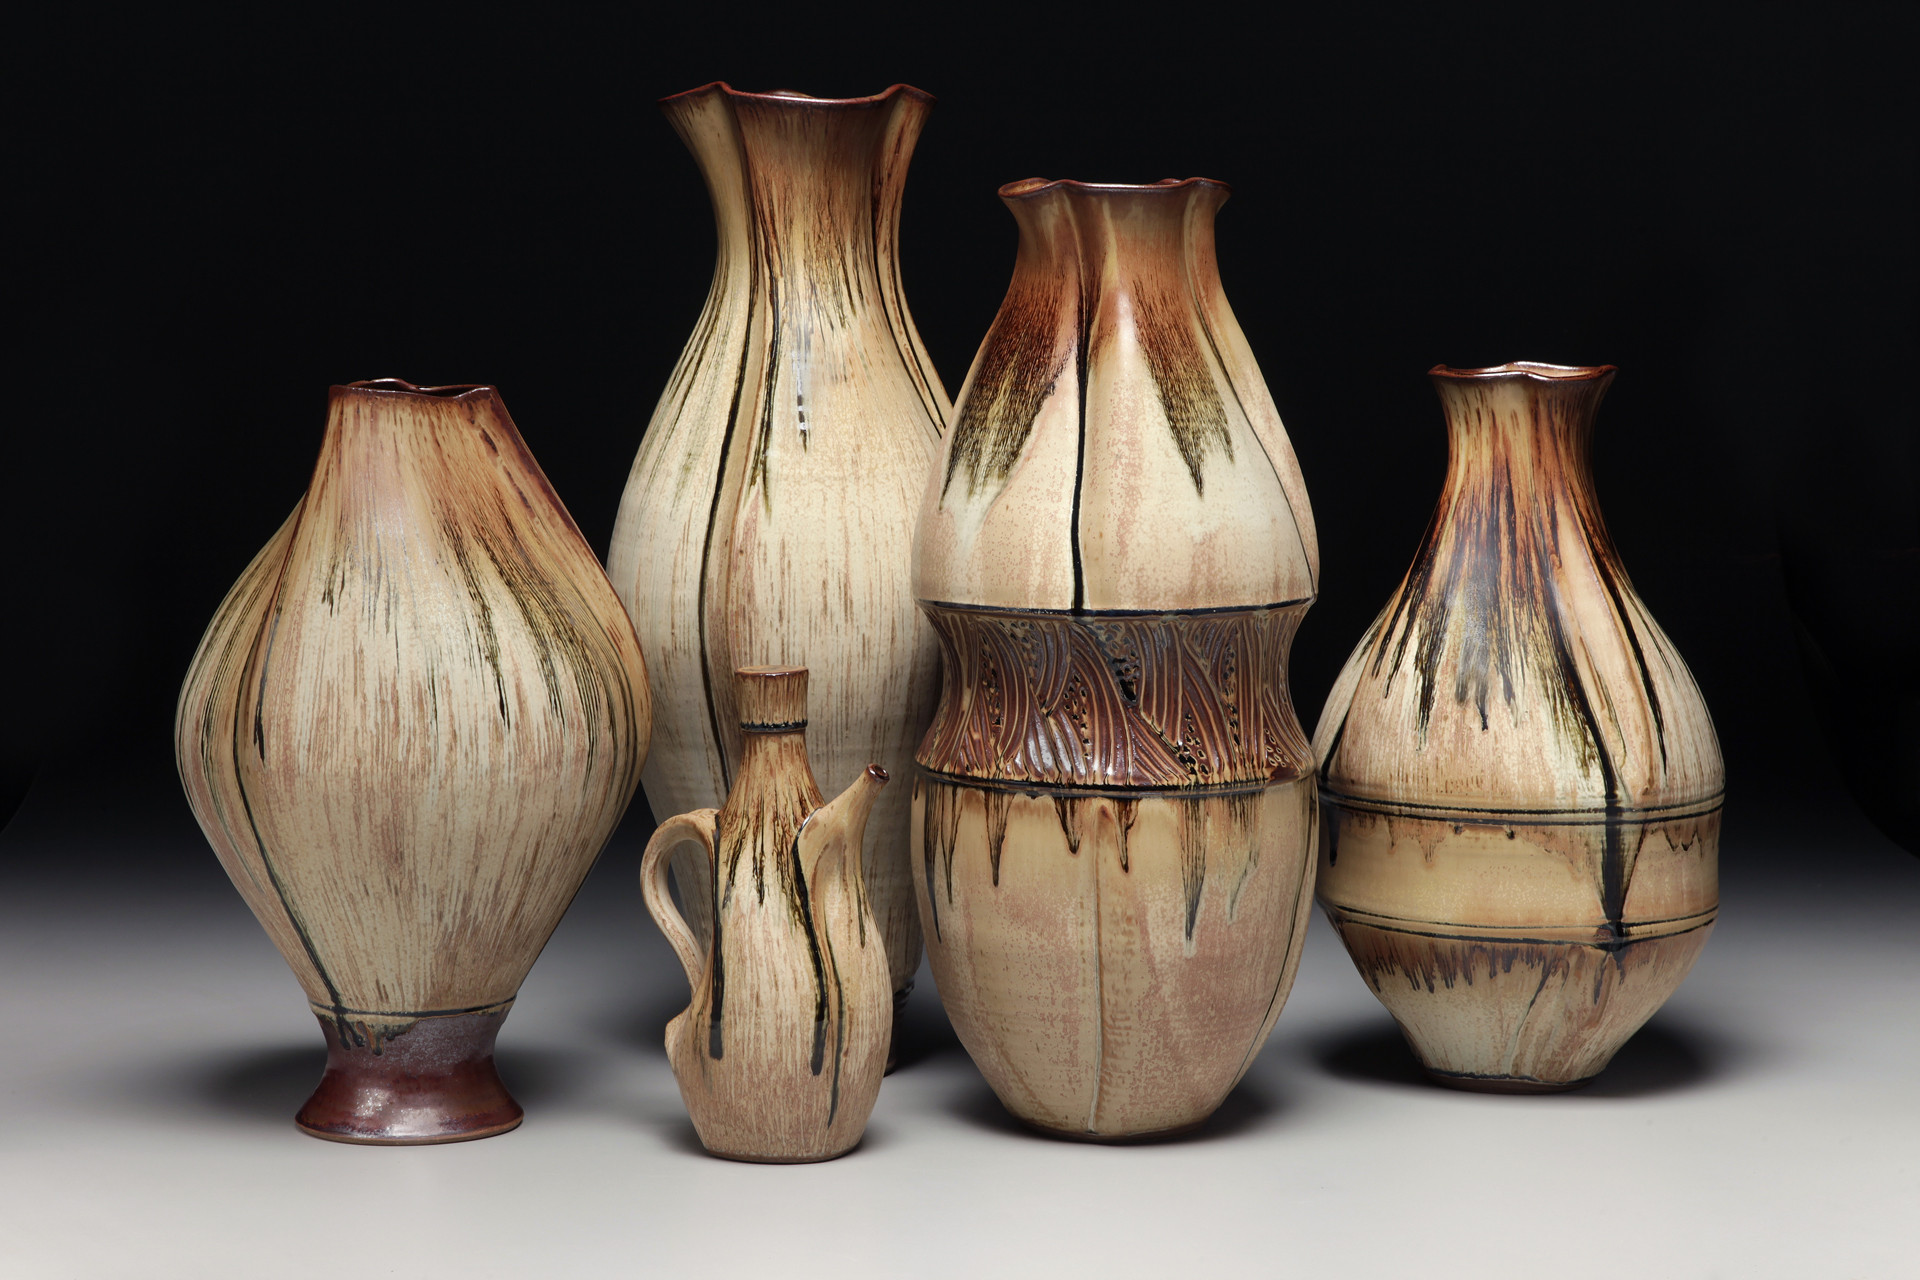 Ceramic Clay Luxury the Village Potters Of Marvelous 43 Models Ceramic Clay